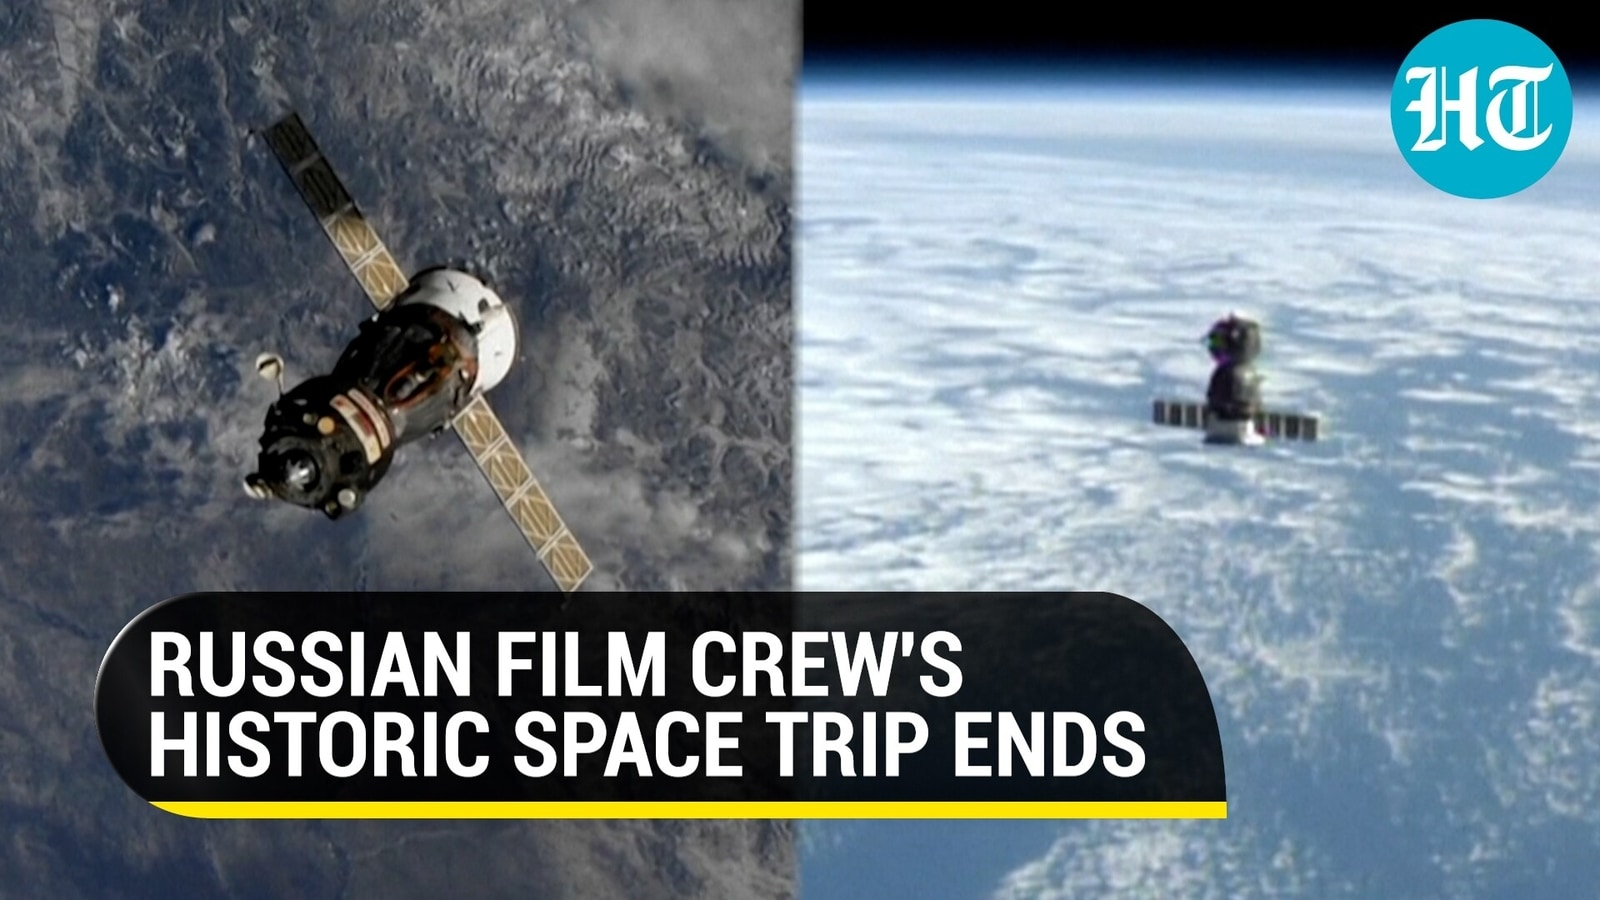 Space travel comes to an end: Russian actor returns to Earth after director shoots movie in orbit